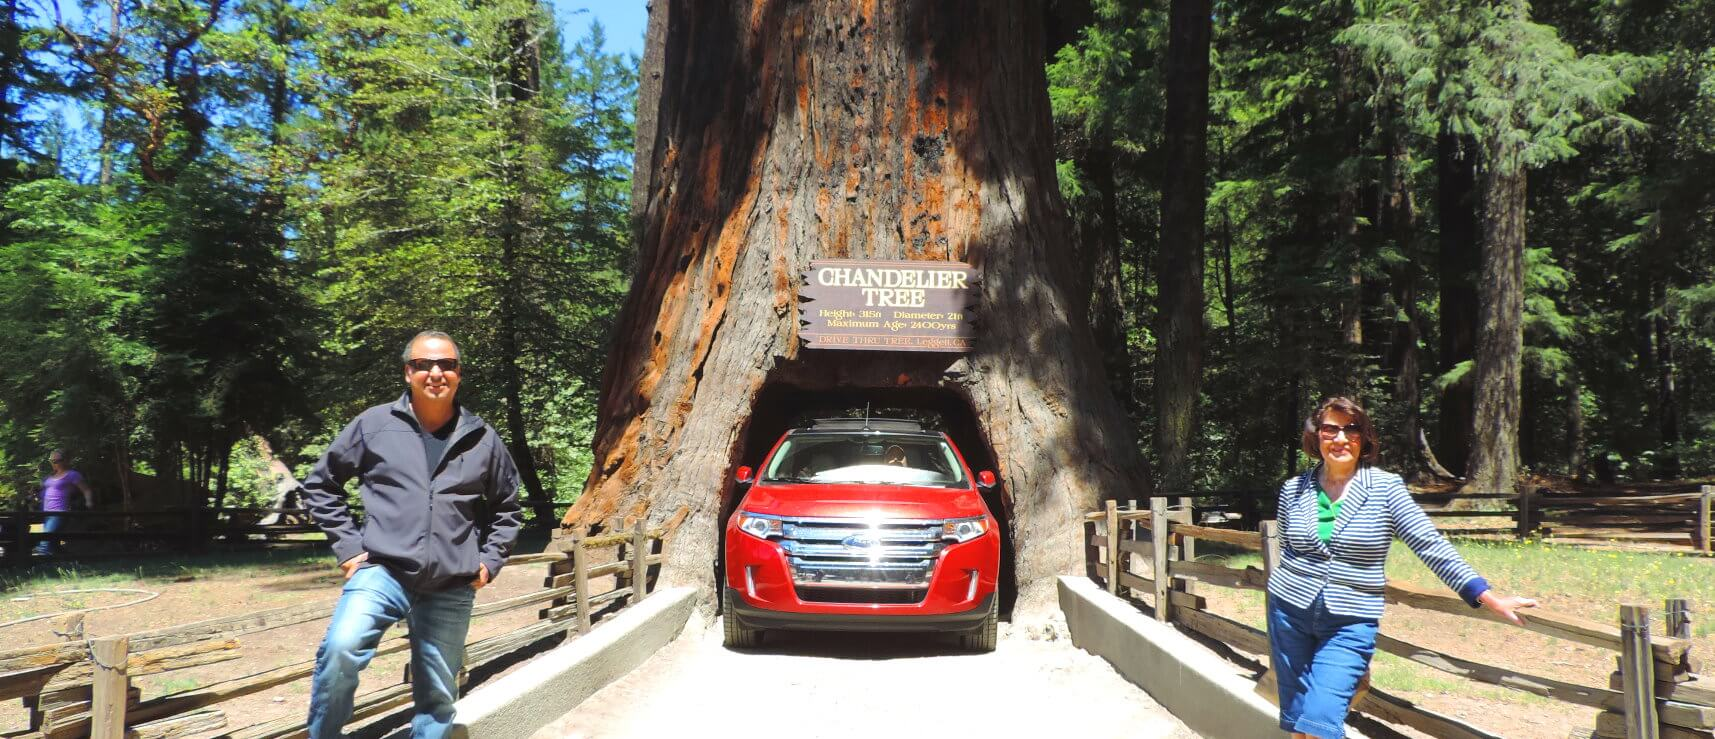 redwood-national-park-must-see-places-redwoods